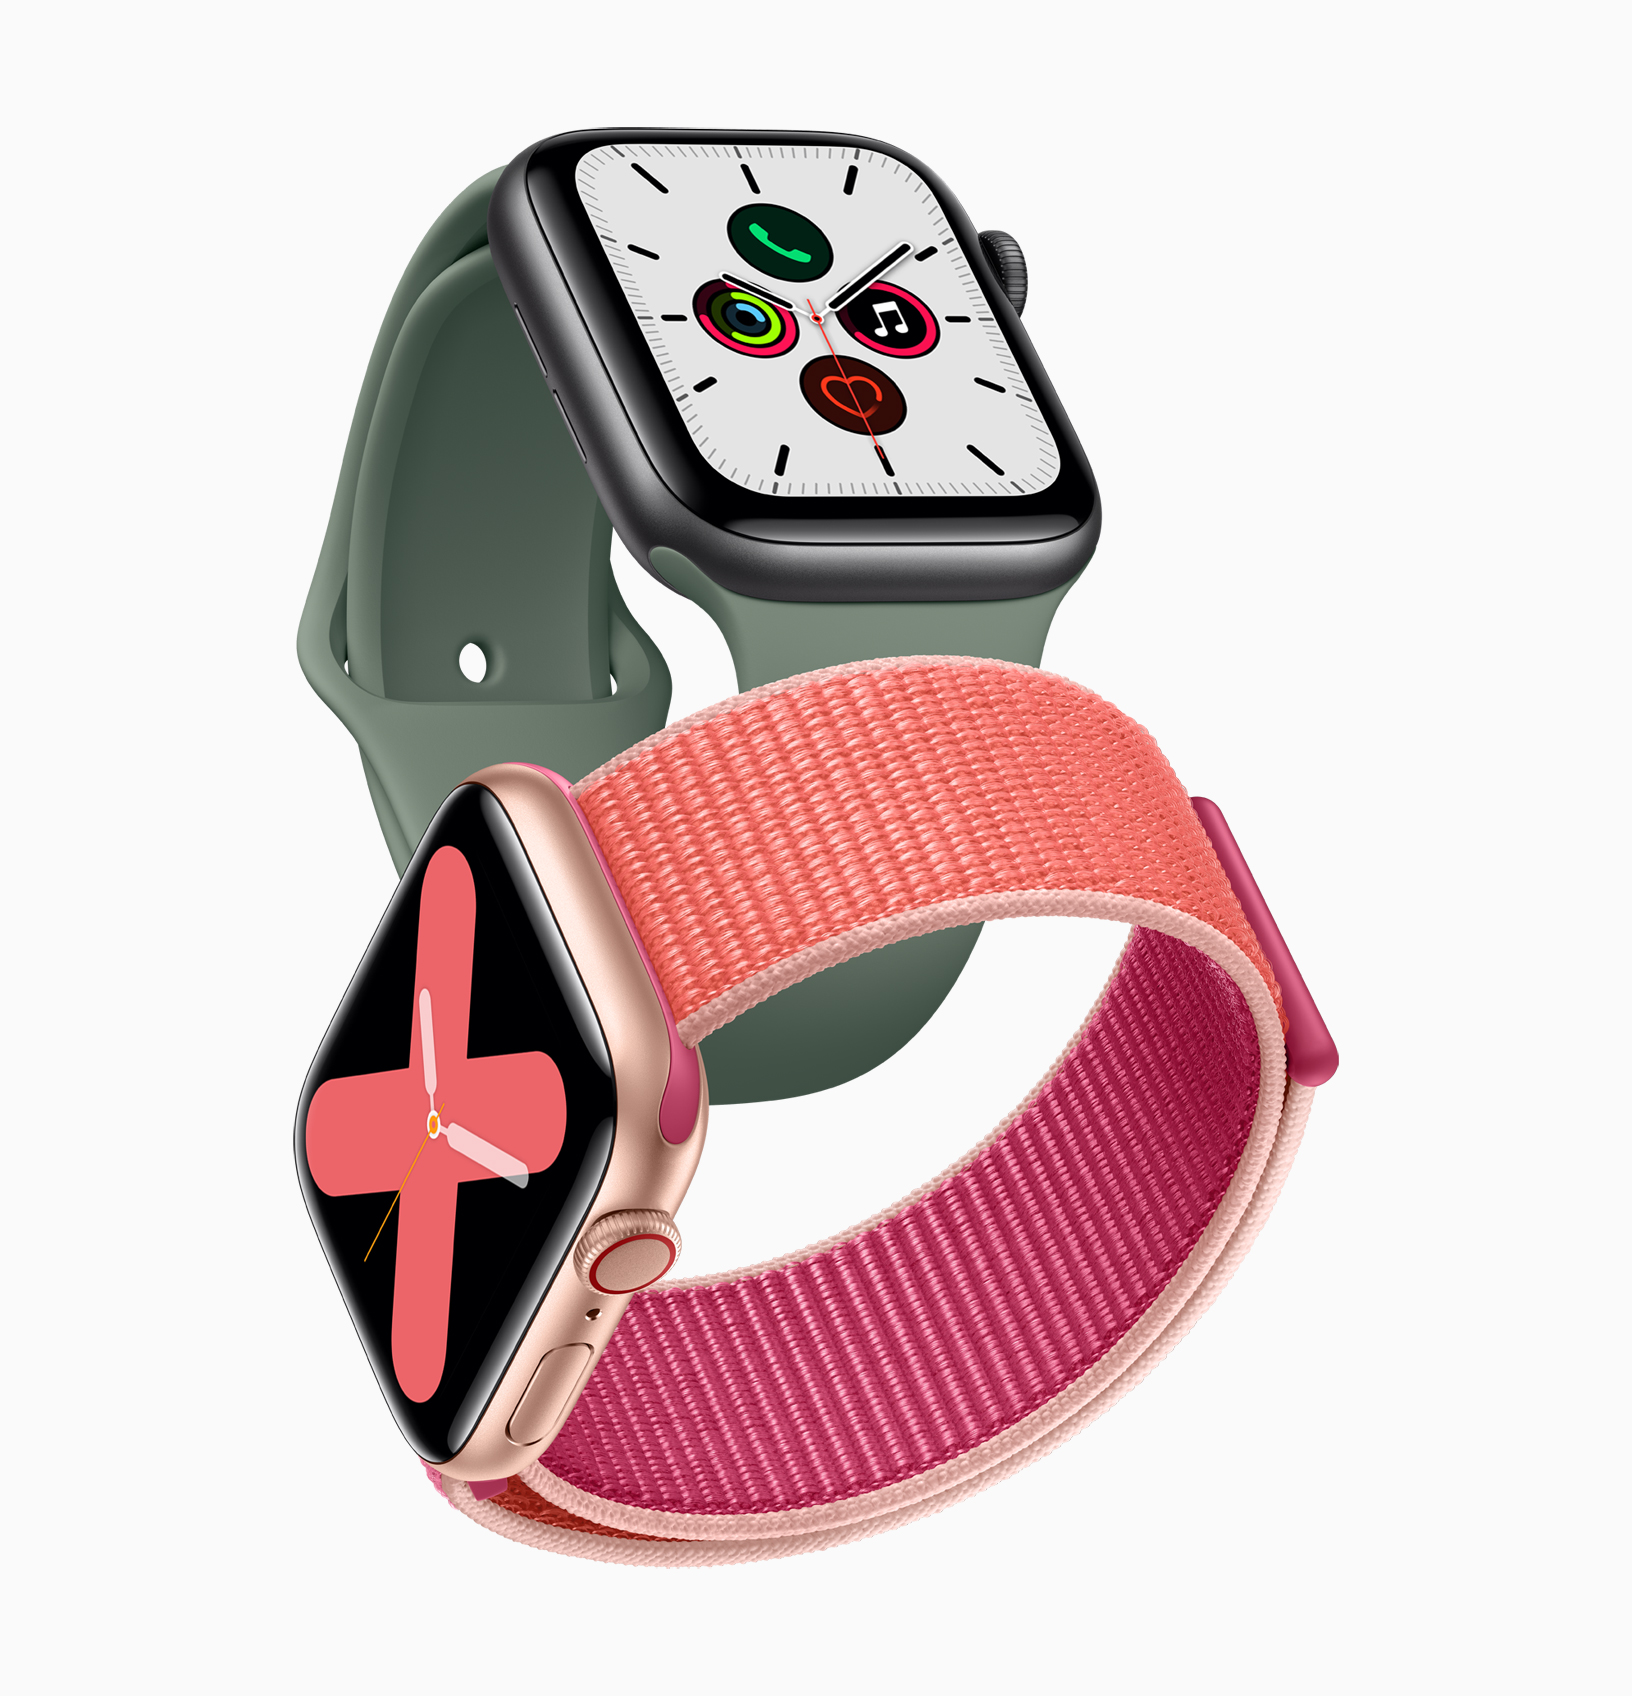 apple_watch_series_5-gold-aluminum-case-pomegranate-band-and-space-gray-aluminum-case-pine-green-band-091019.jpg